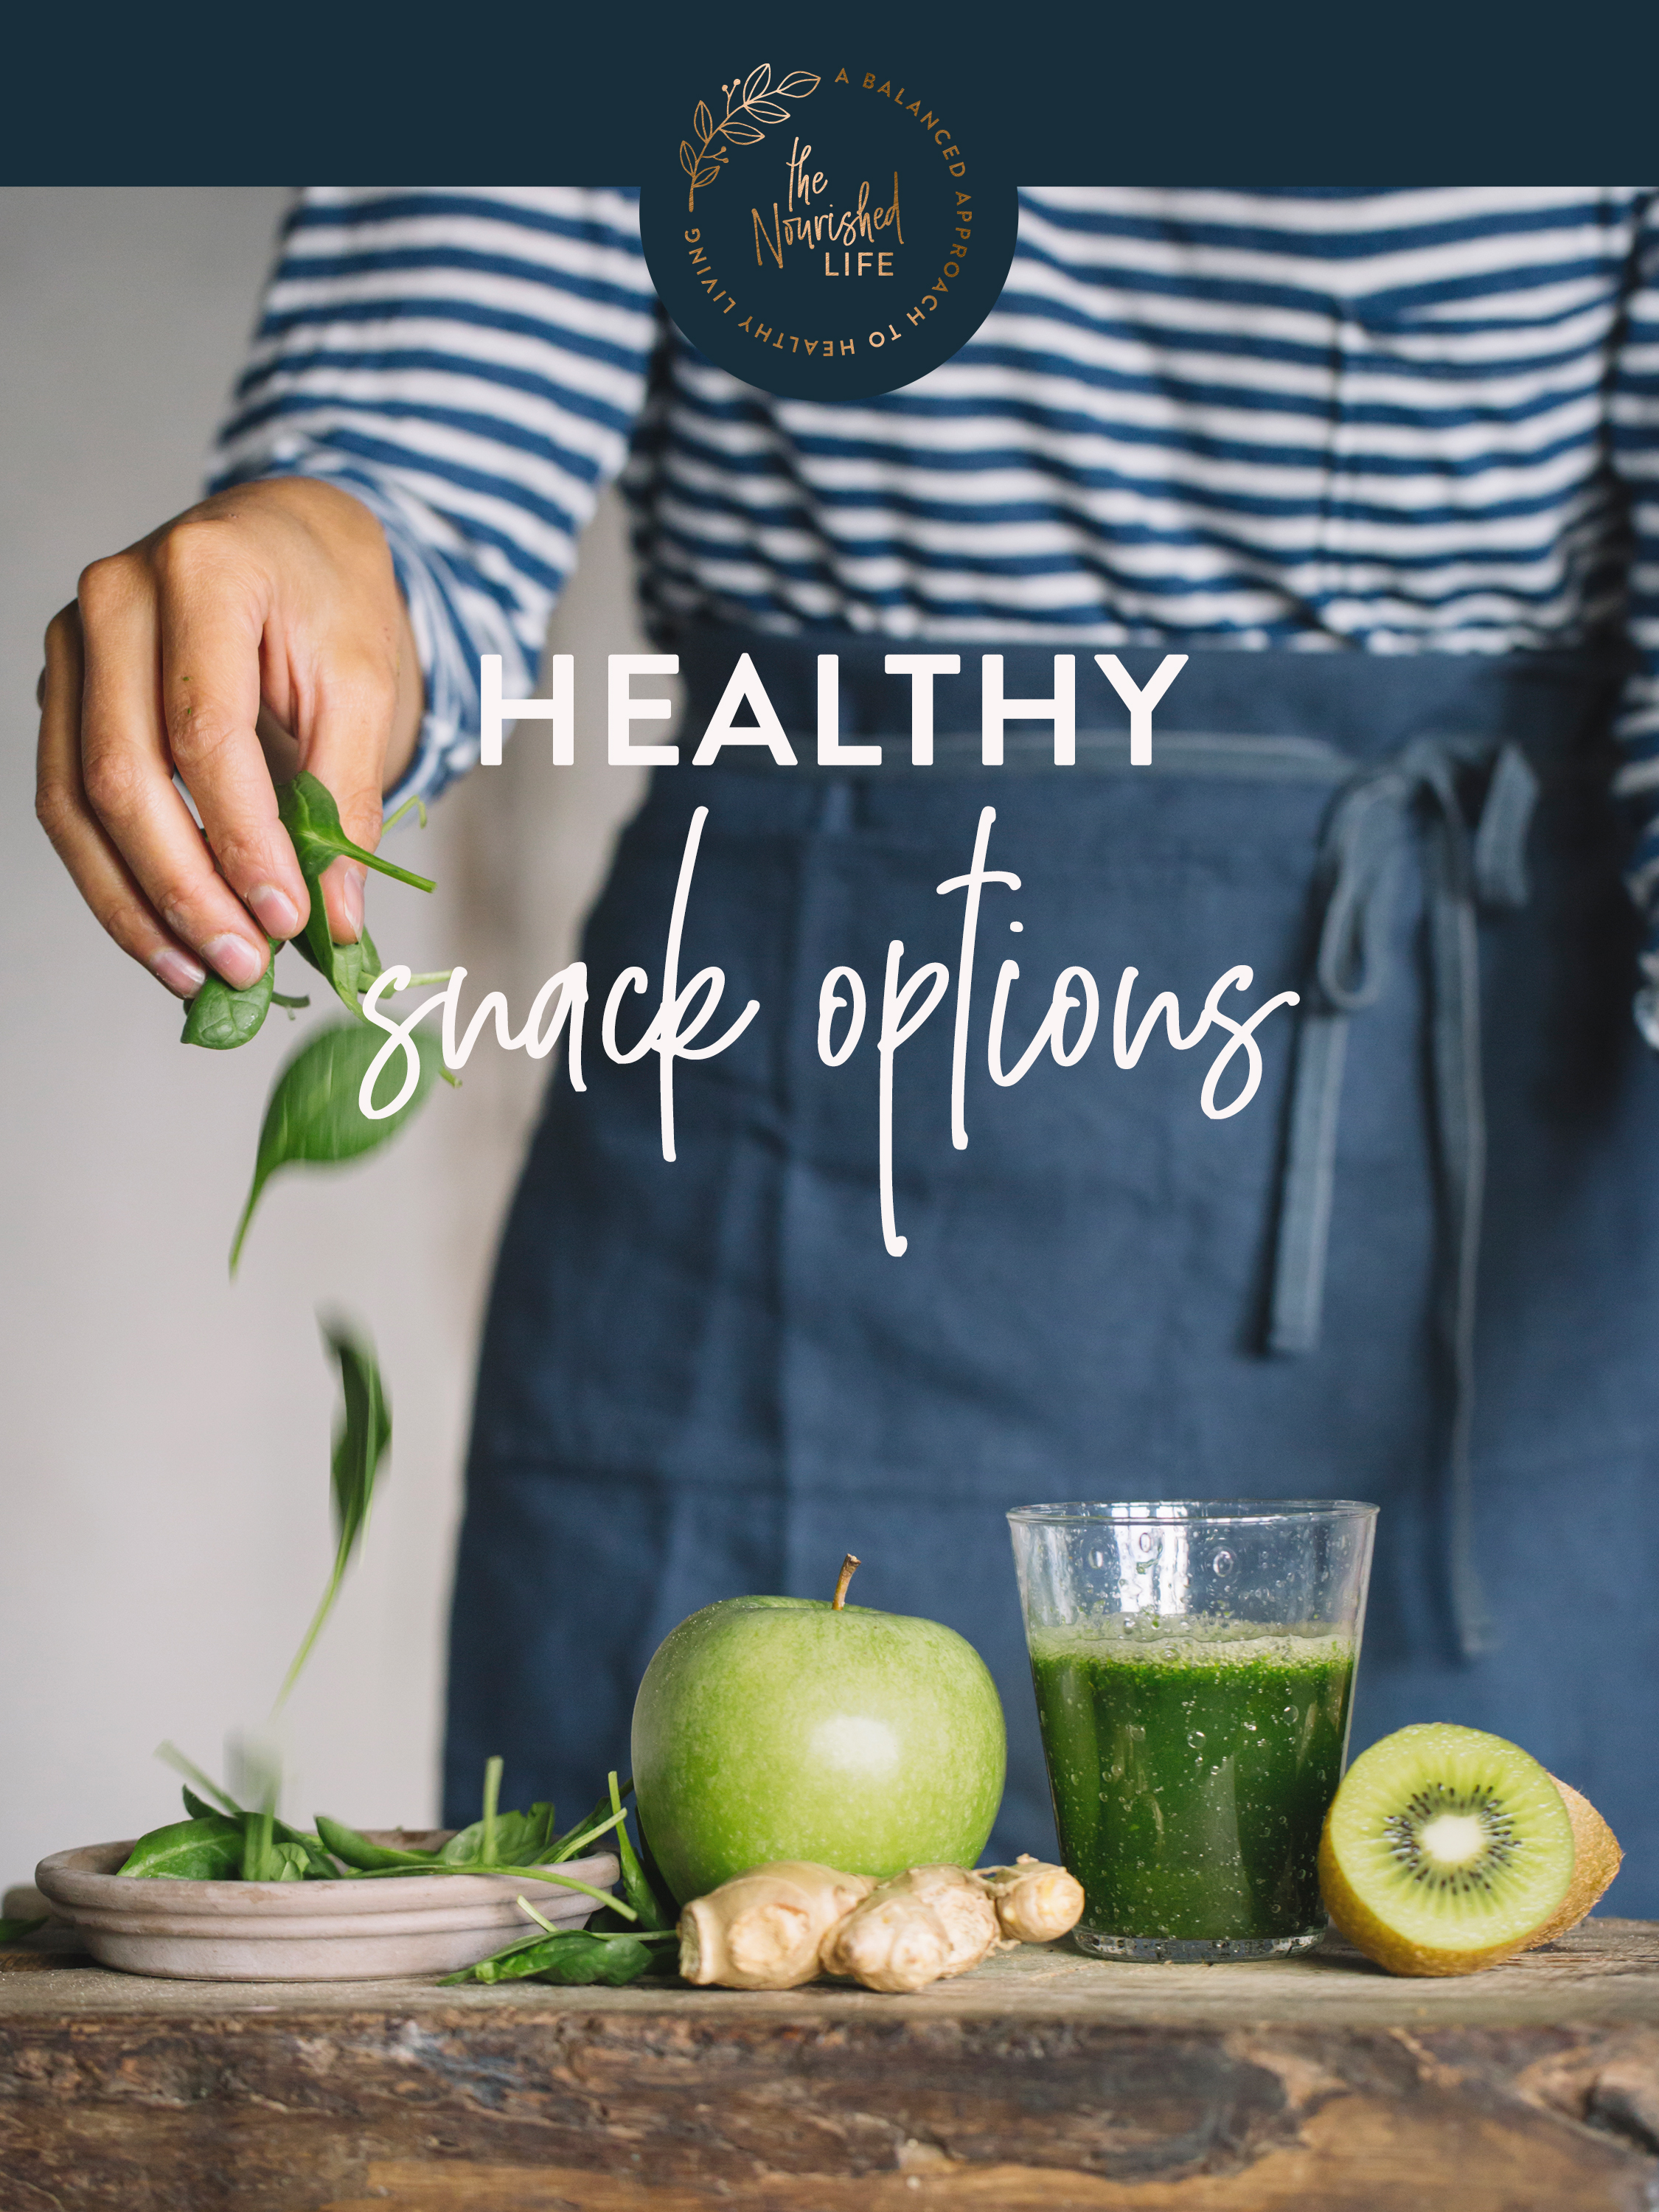 Healthy Snack Options | The Nourished Life e-book design by Janessa Rae Design Creative